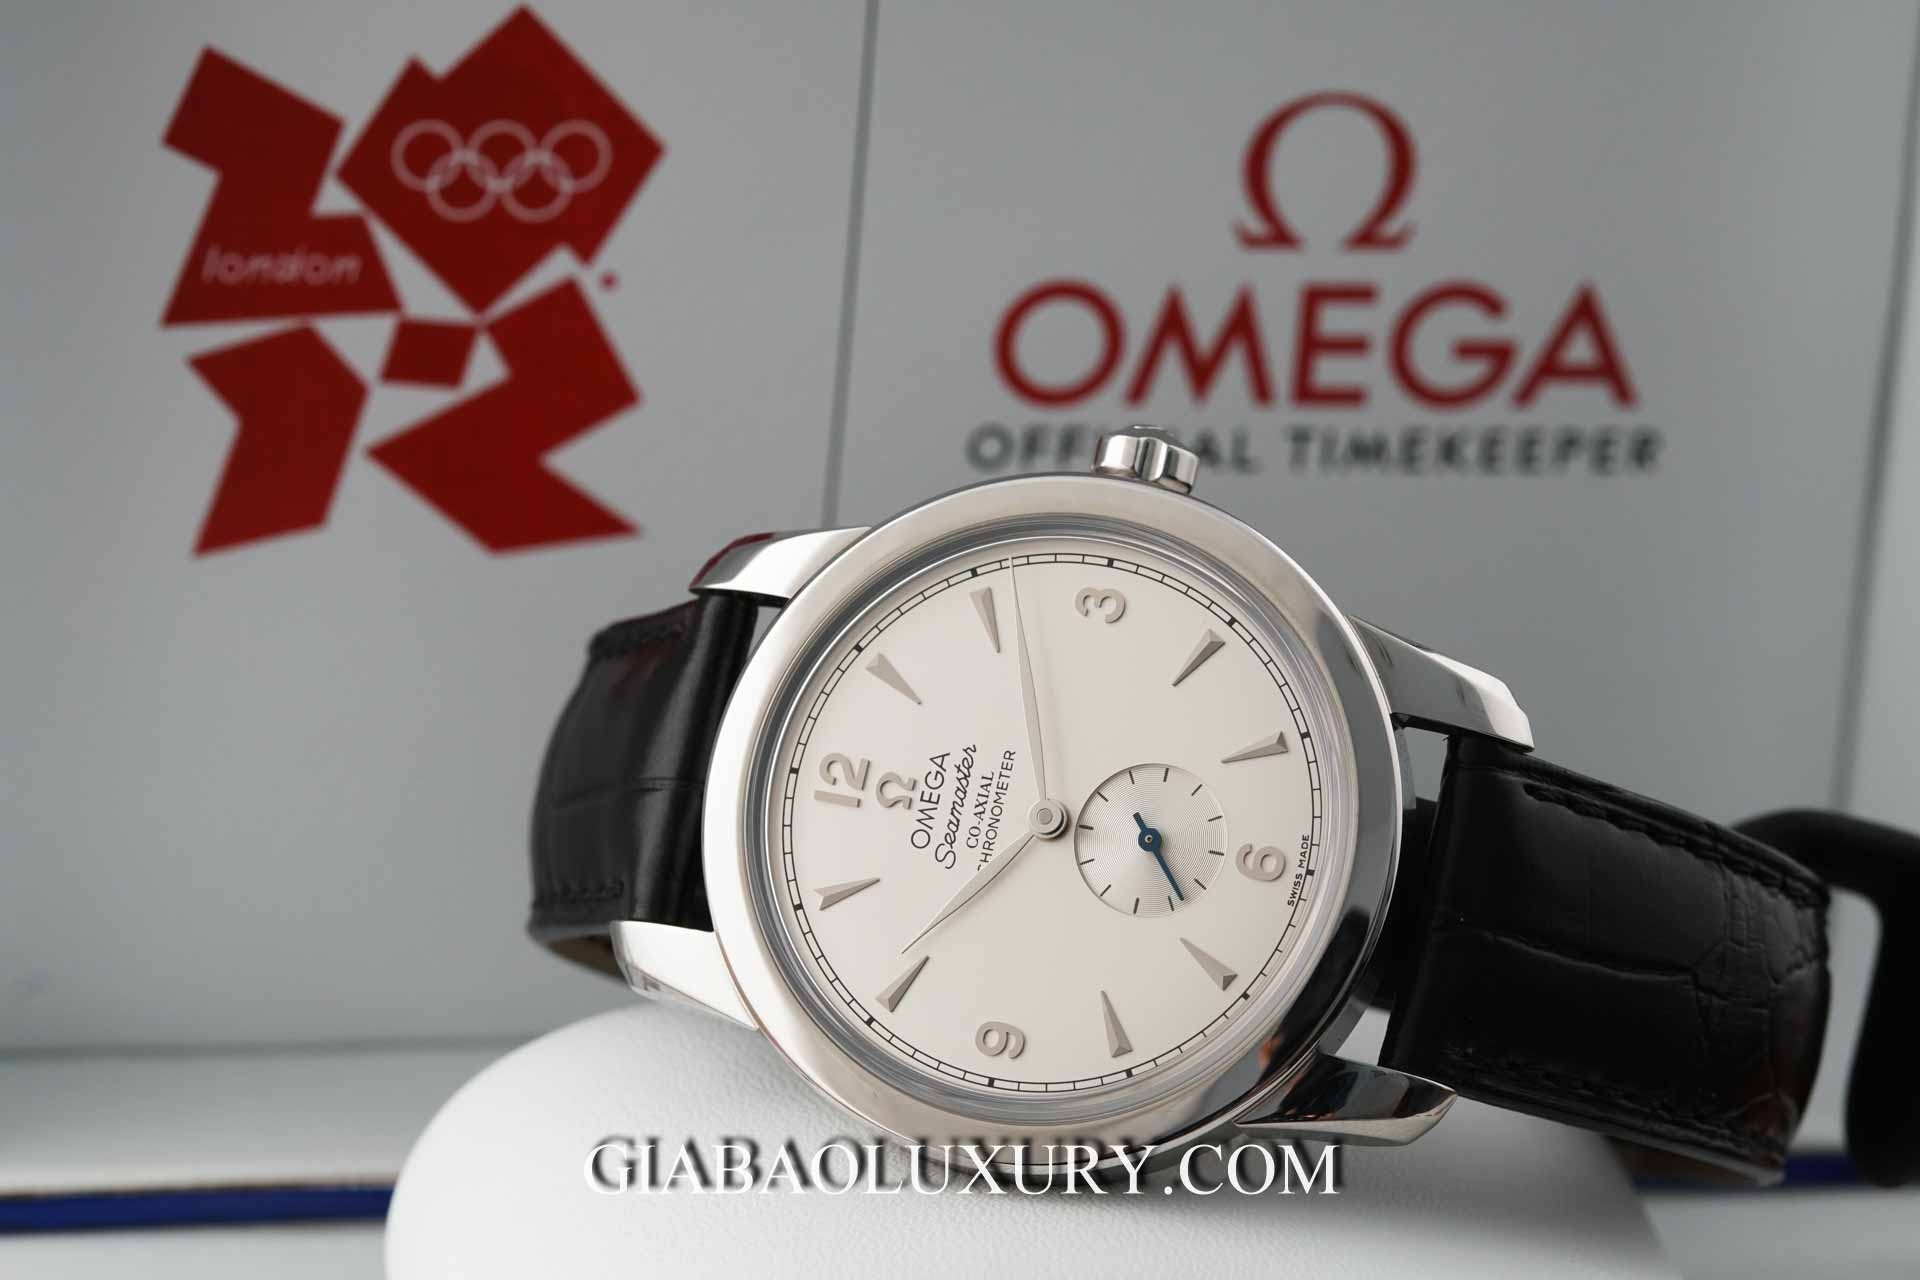 Đồng Hồ Omega Specialities Olympic Collection London 2012 39mm